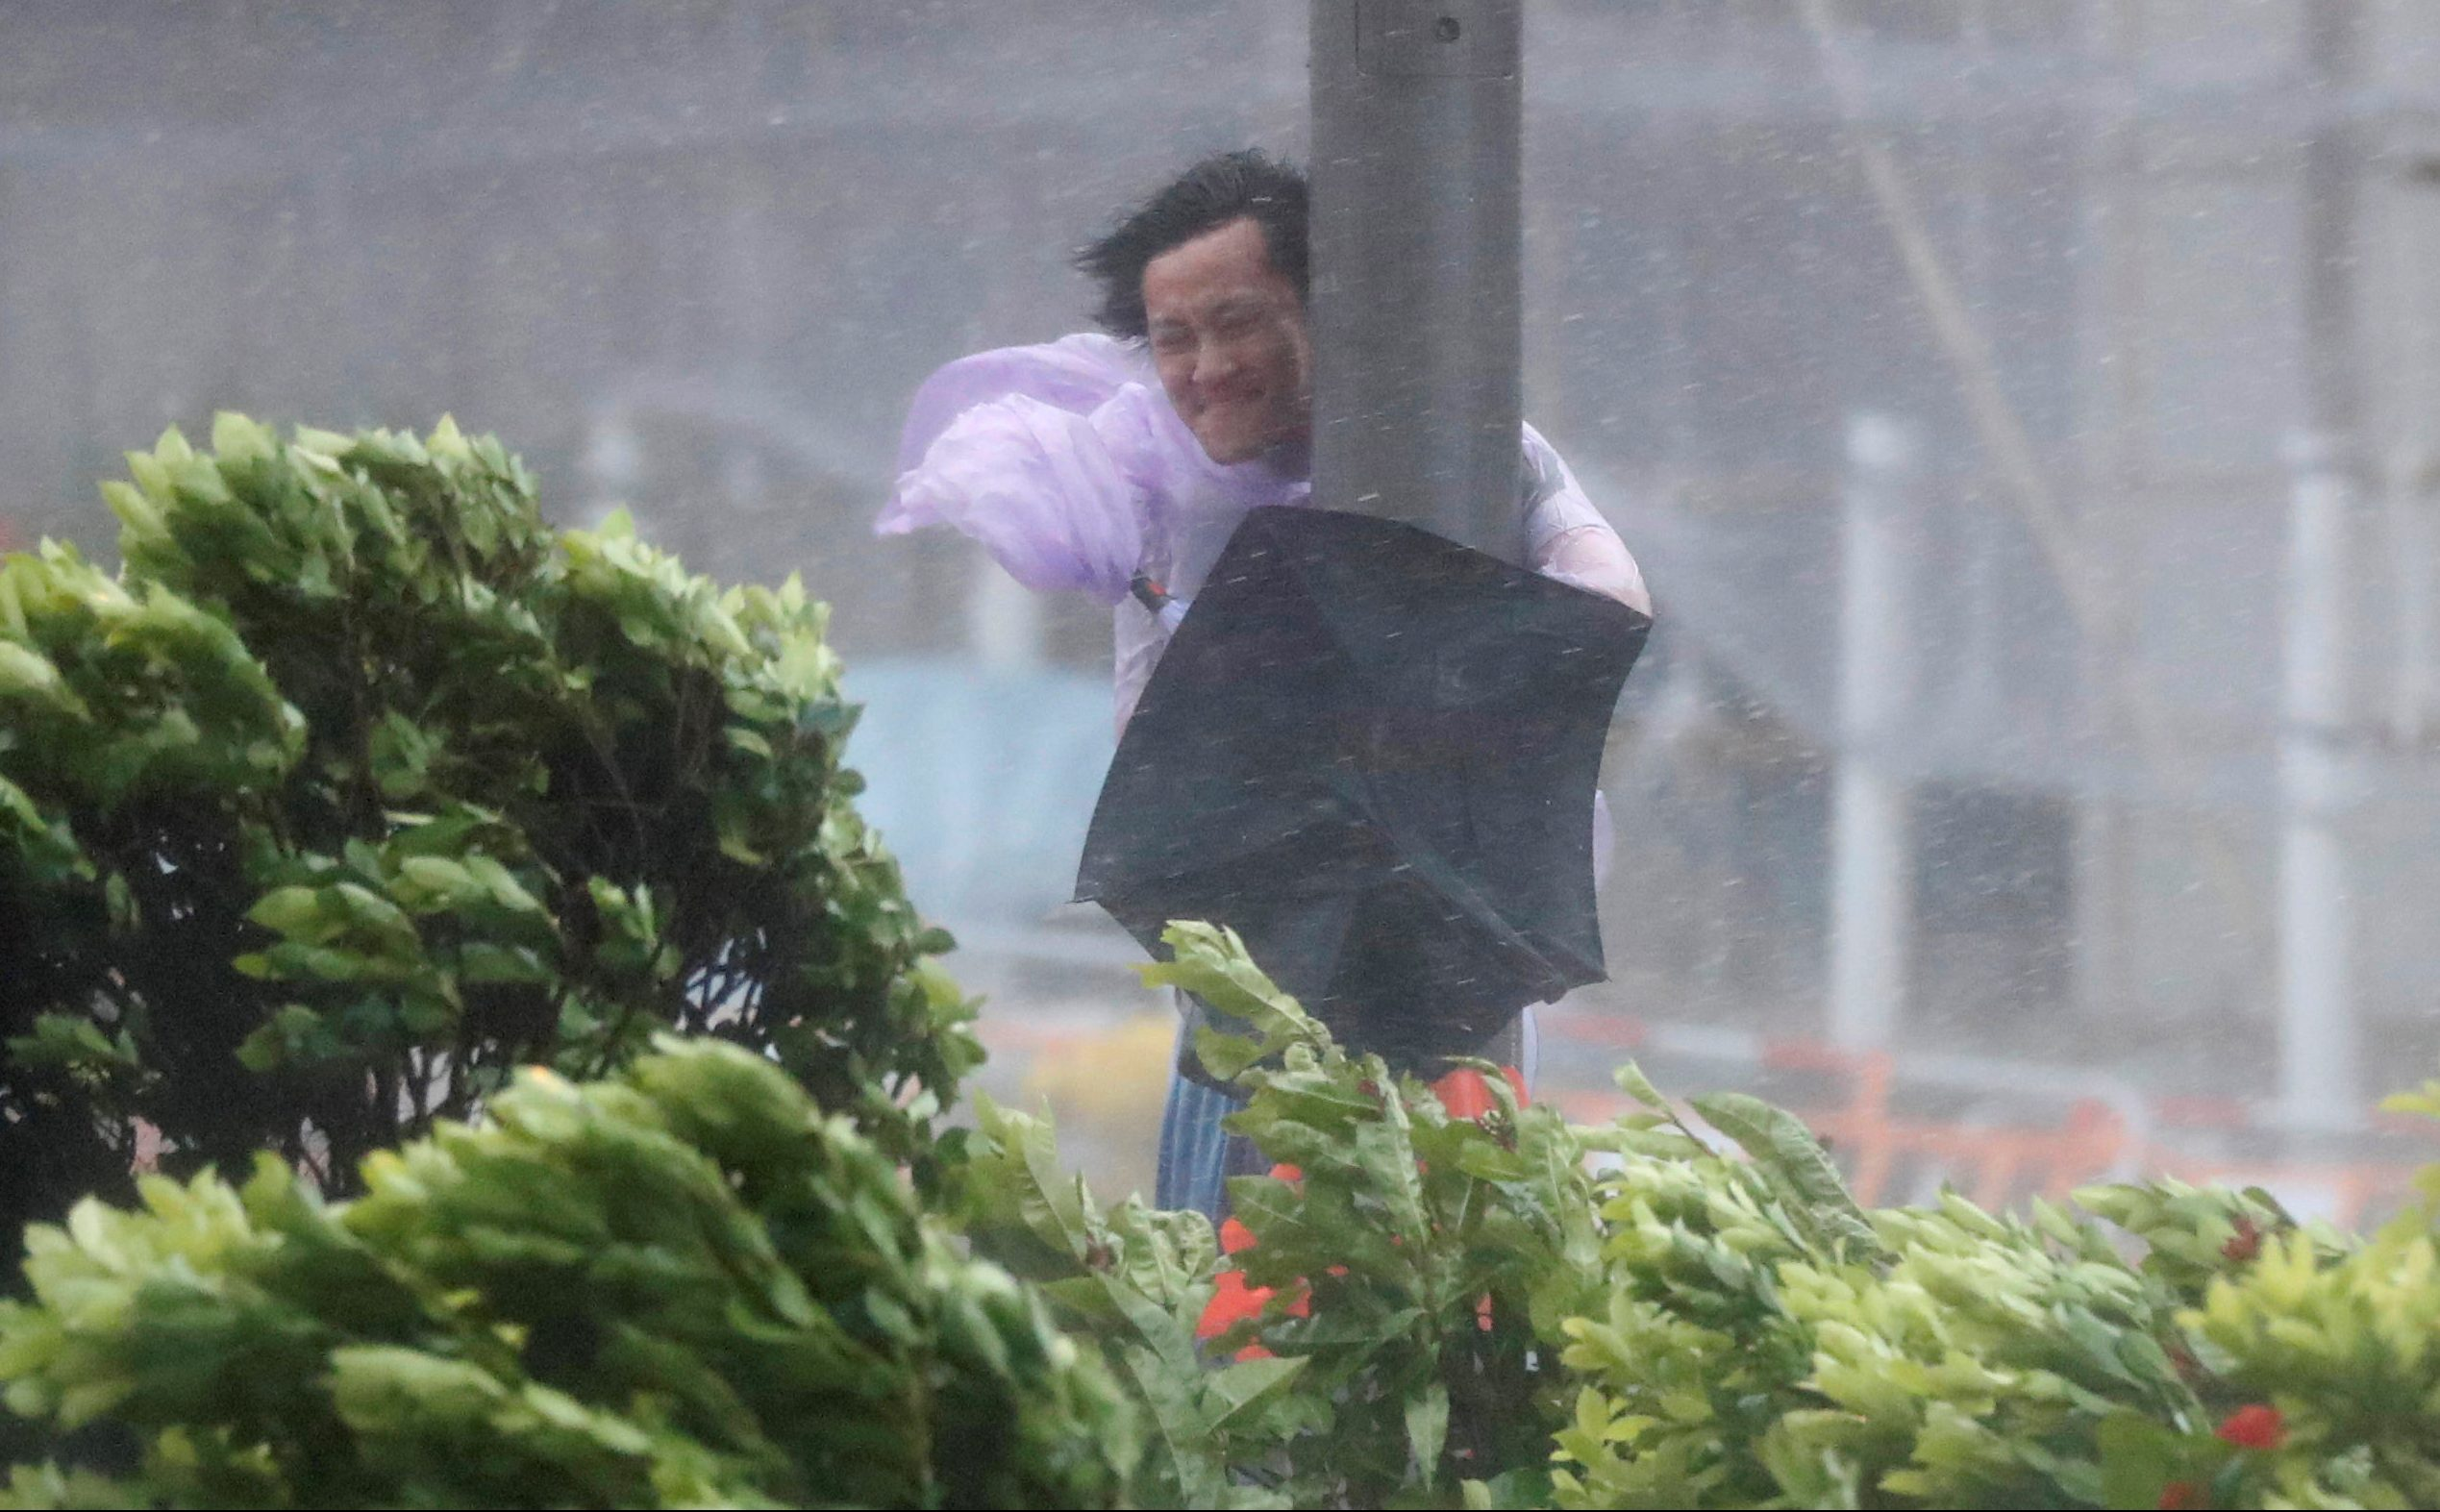 A man holds onto a lamp post against strong wind as Typhoon Hato hits Hong Kong, China August 23, 2017. REUTERS/Tyrone Siu TPX IMAGES OF THE DAY - RTS1CWDQ